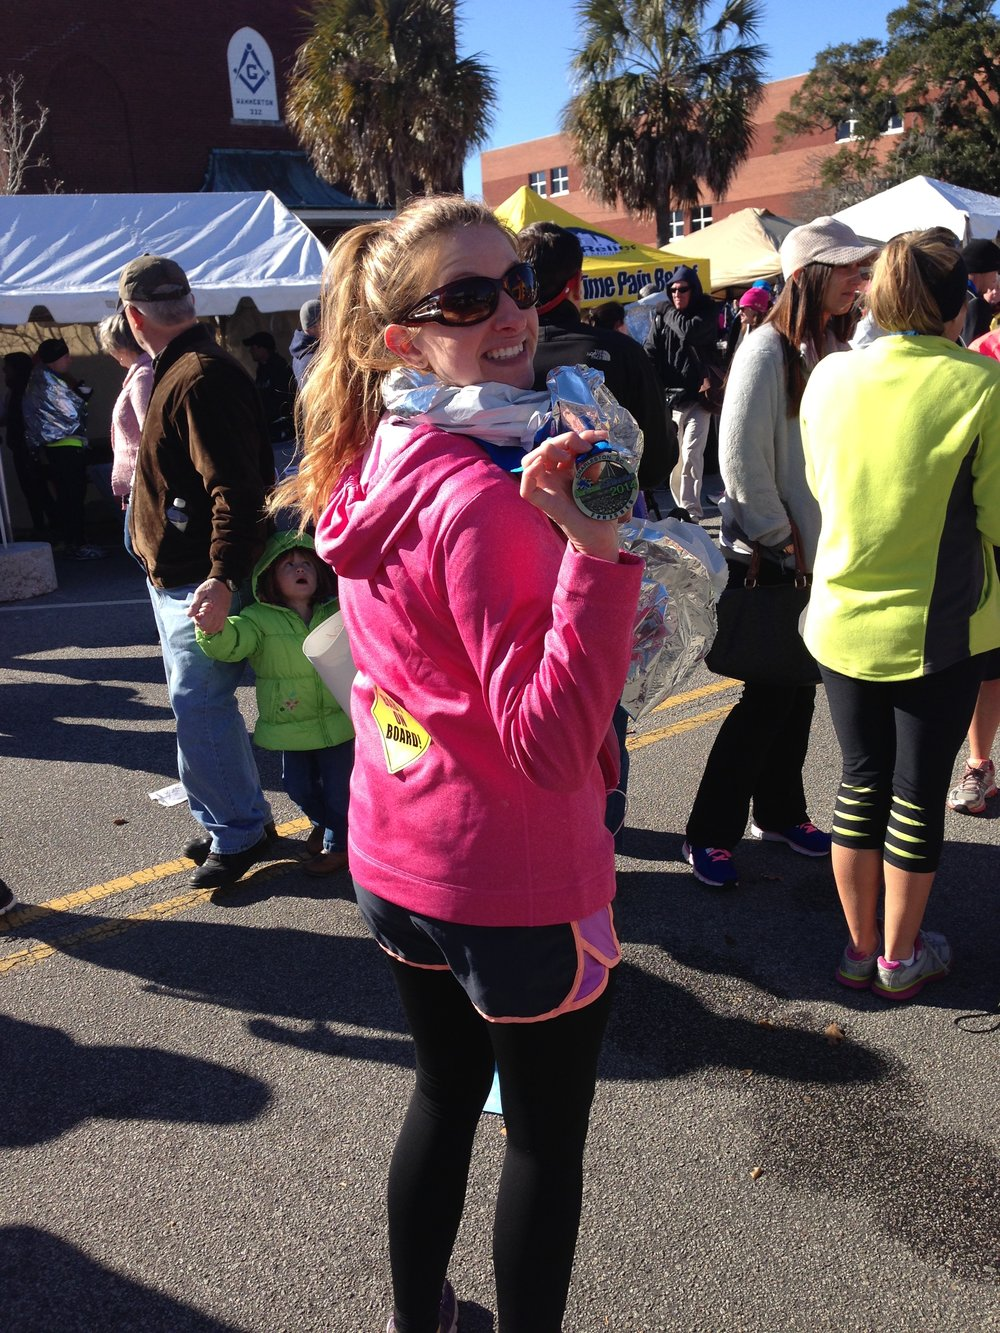 After finishing a half marathon at 20 weeks pregnant